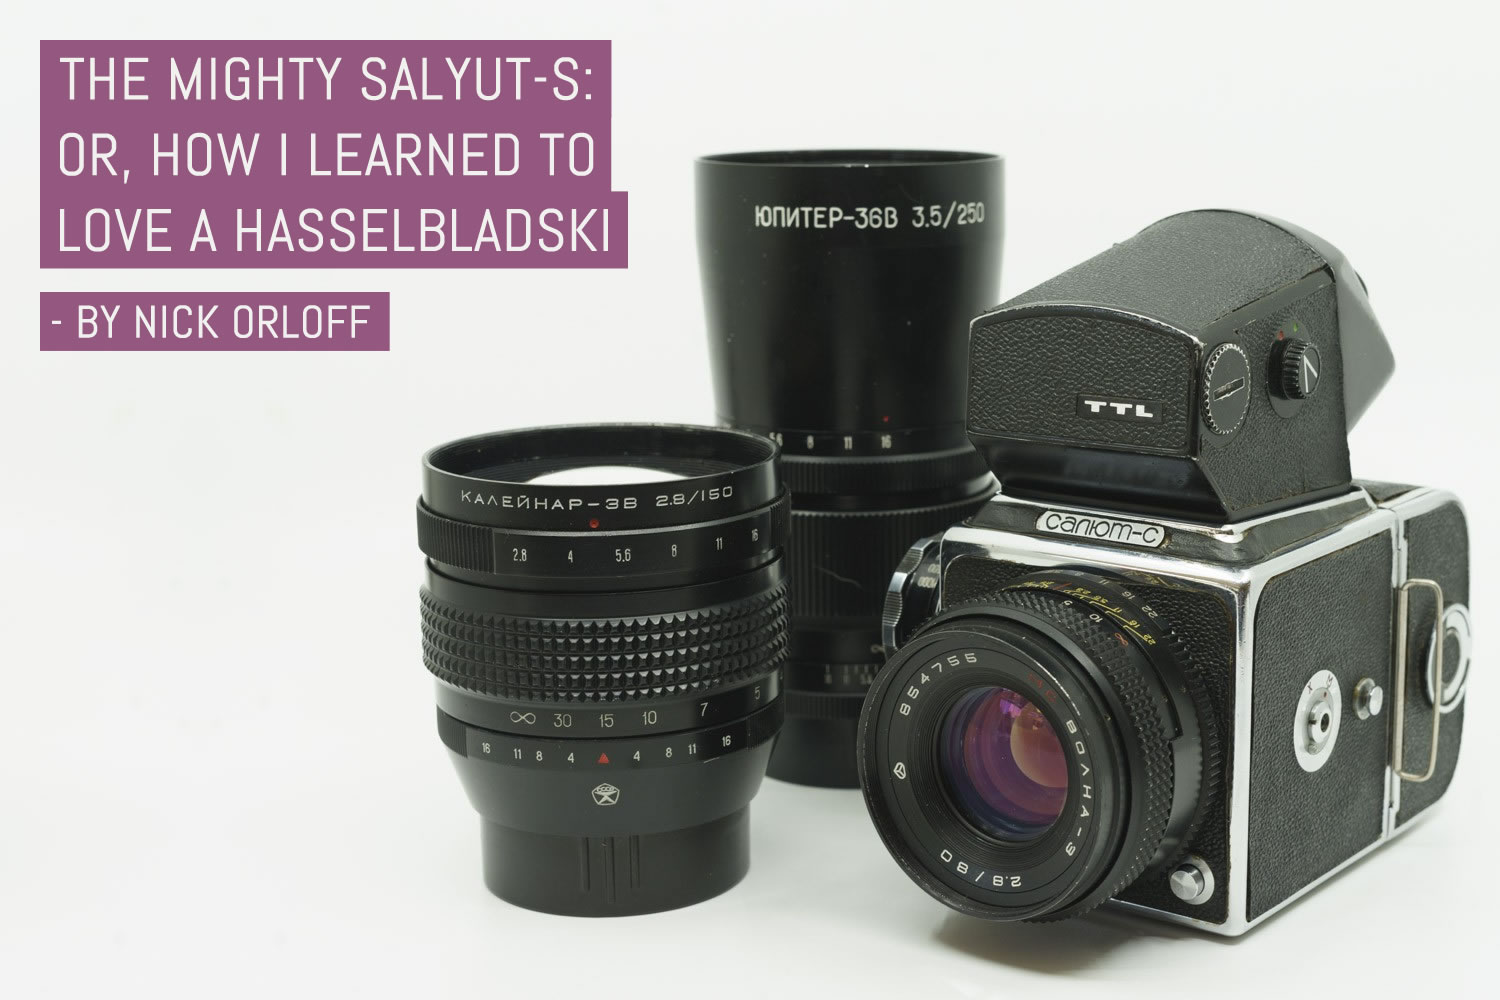 The mighty Salyut-S: Or, how I learned to love a Hasselbladski